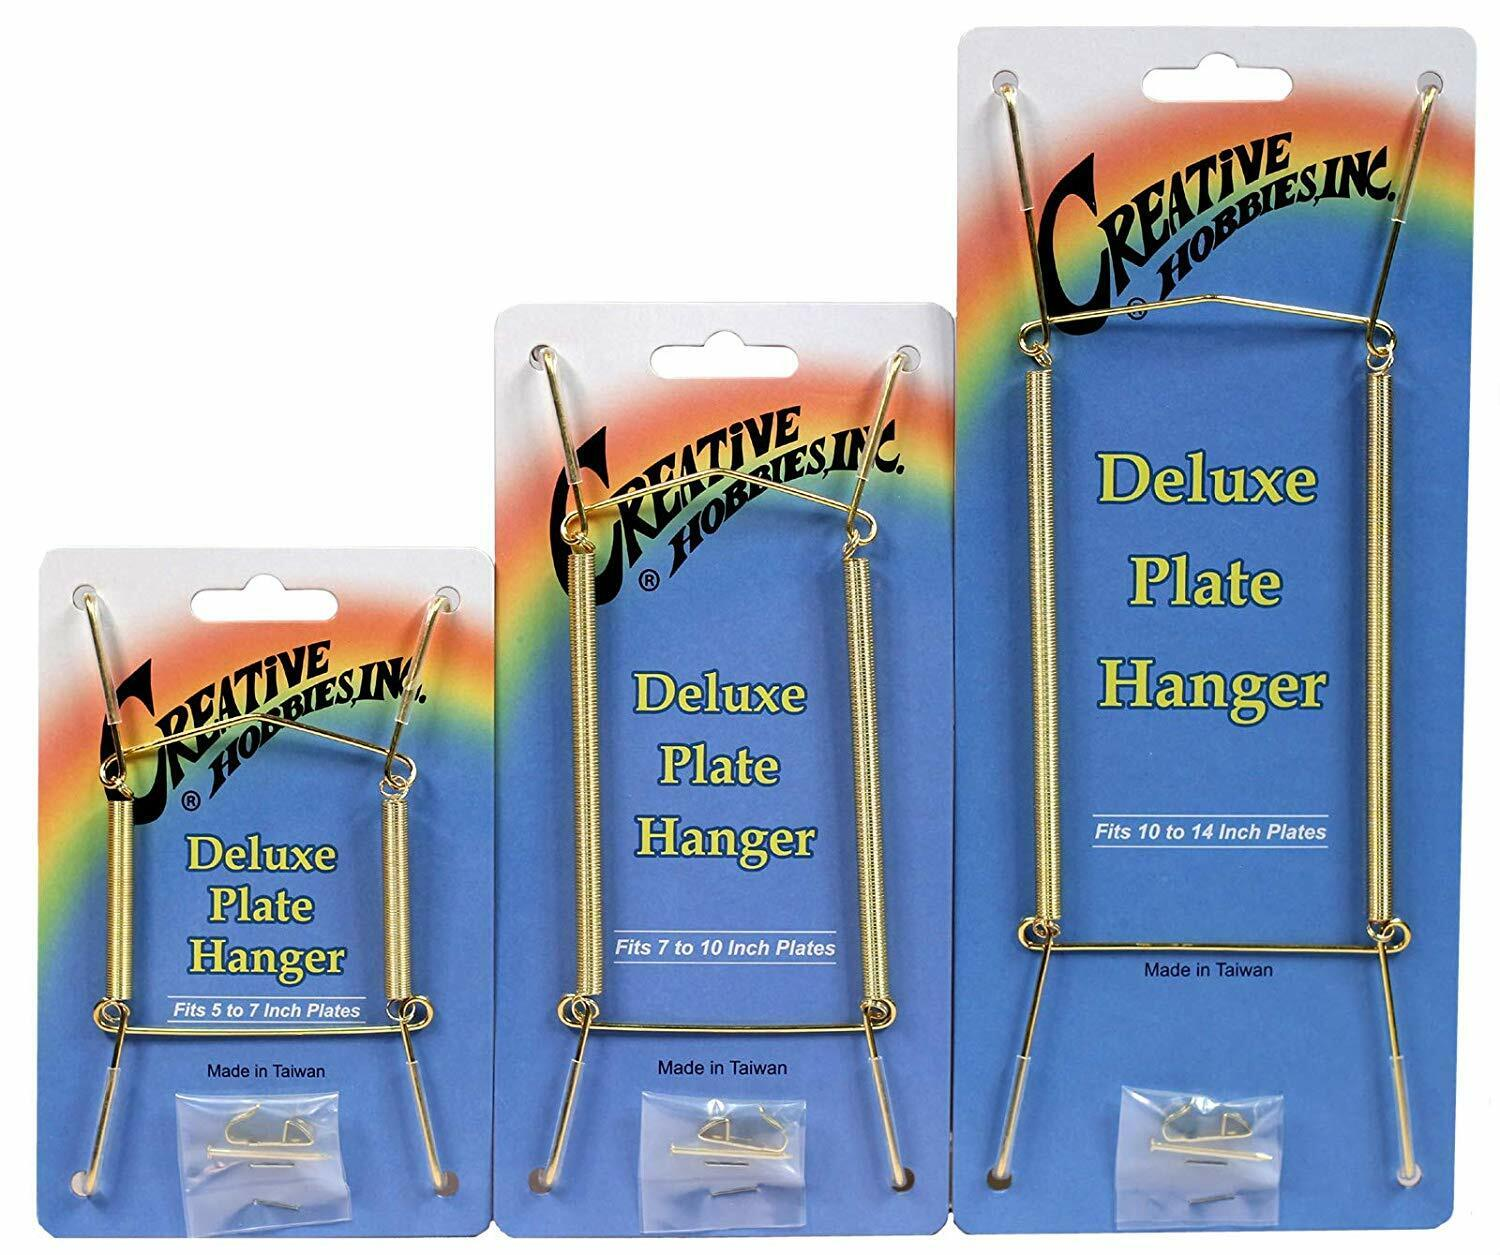 Gold Plate Display Hangers, Spring Type,Hold 5 to 14 Inch Plates -Pack of 12 Crafts